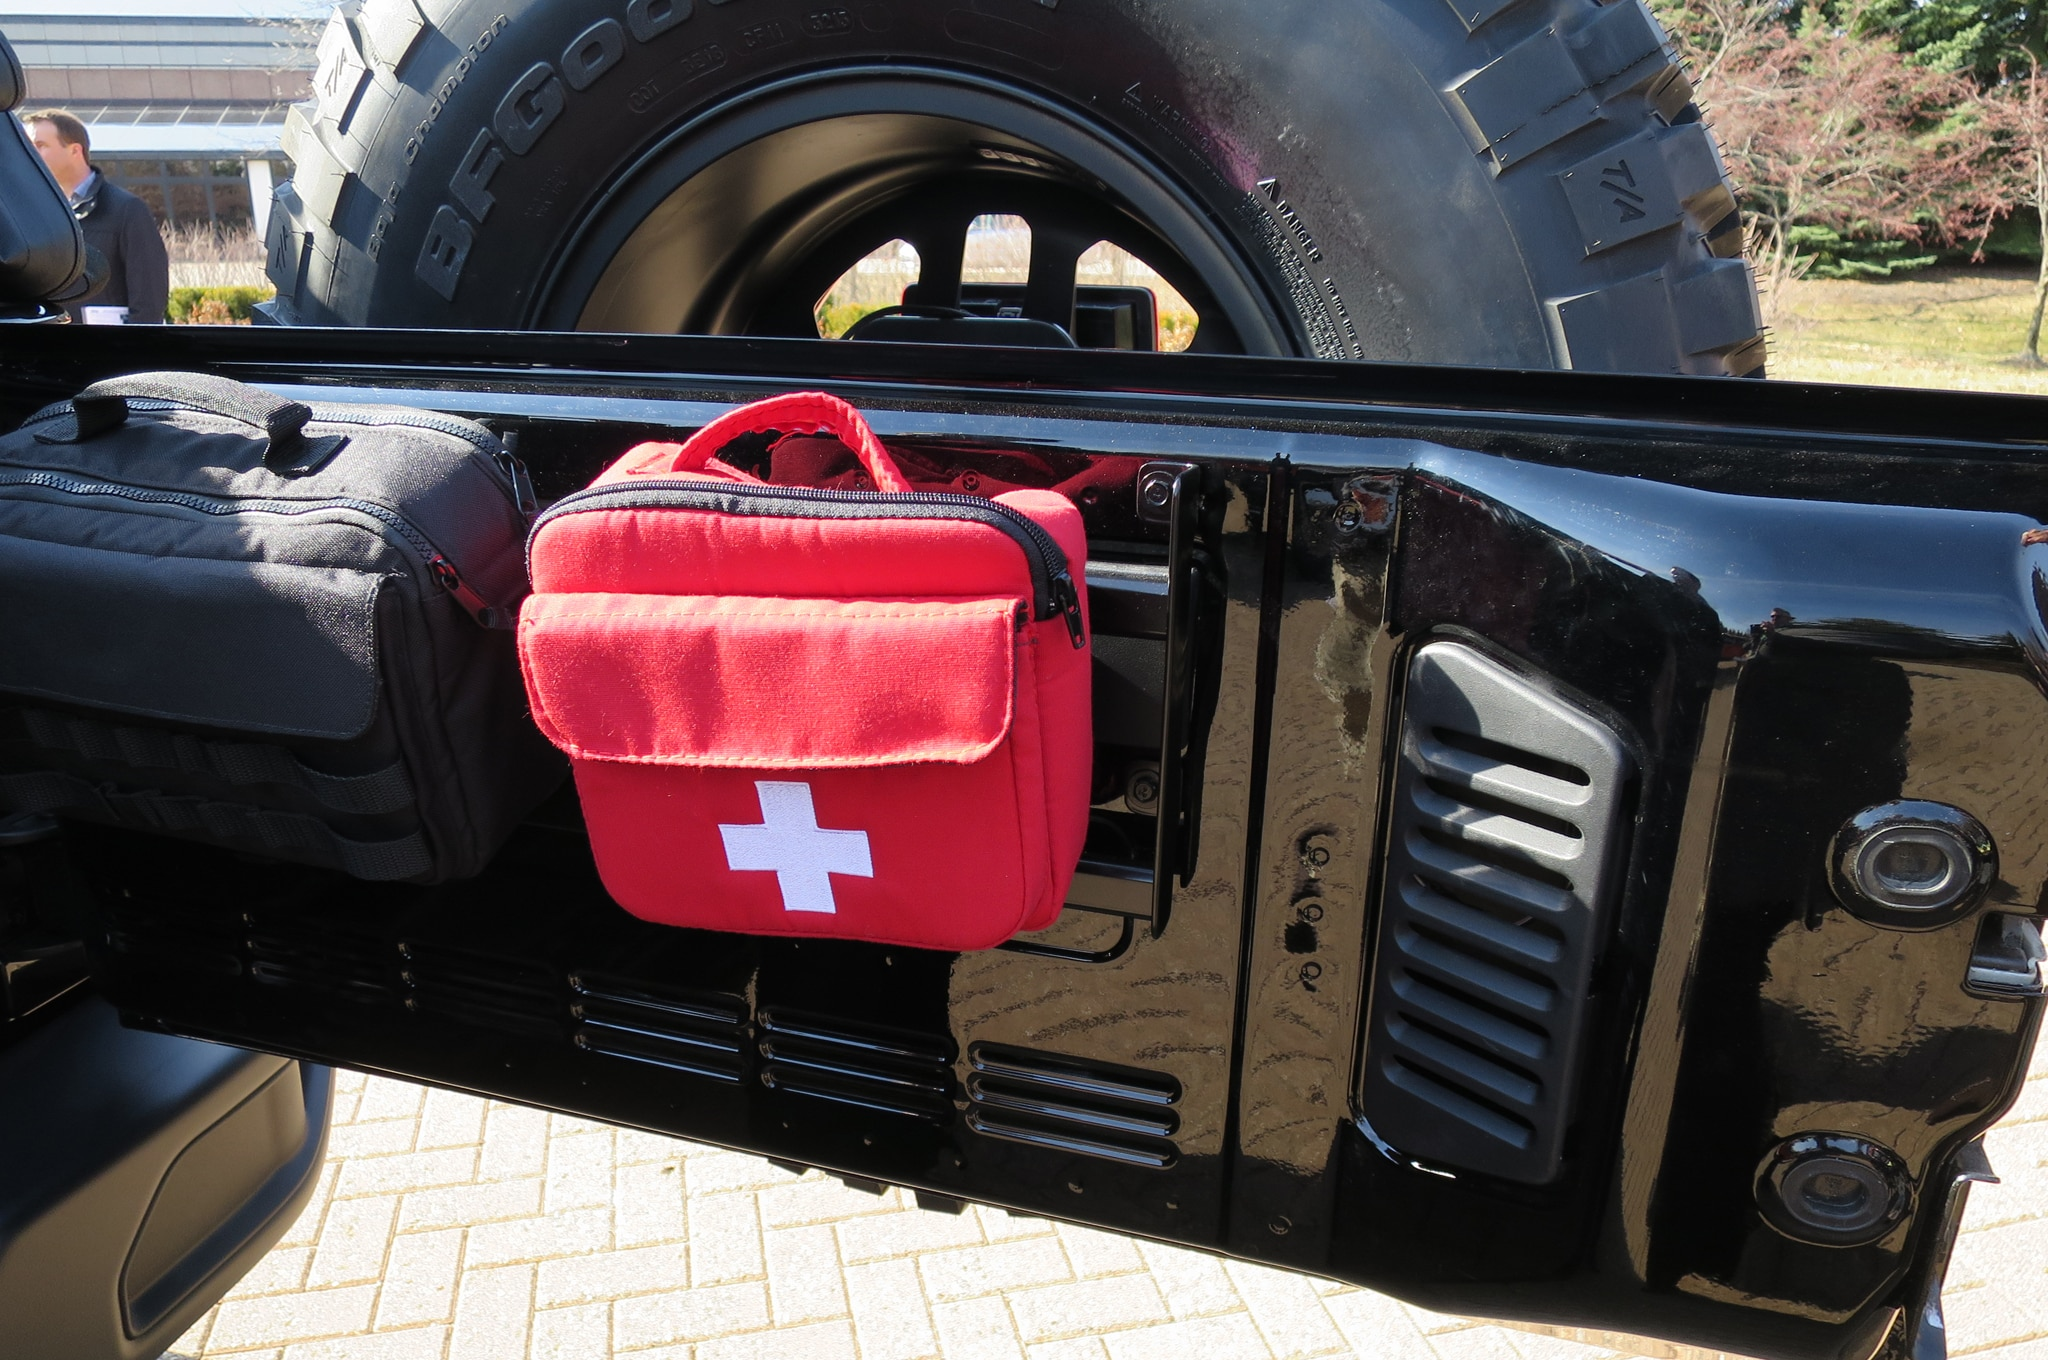 Jeep Wrangler Level Red Concept first aid kit